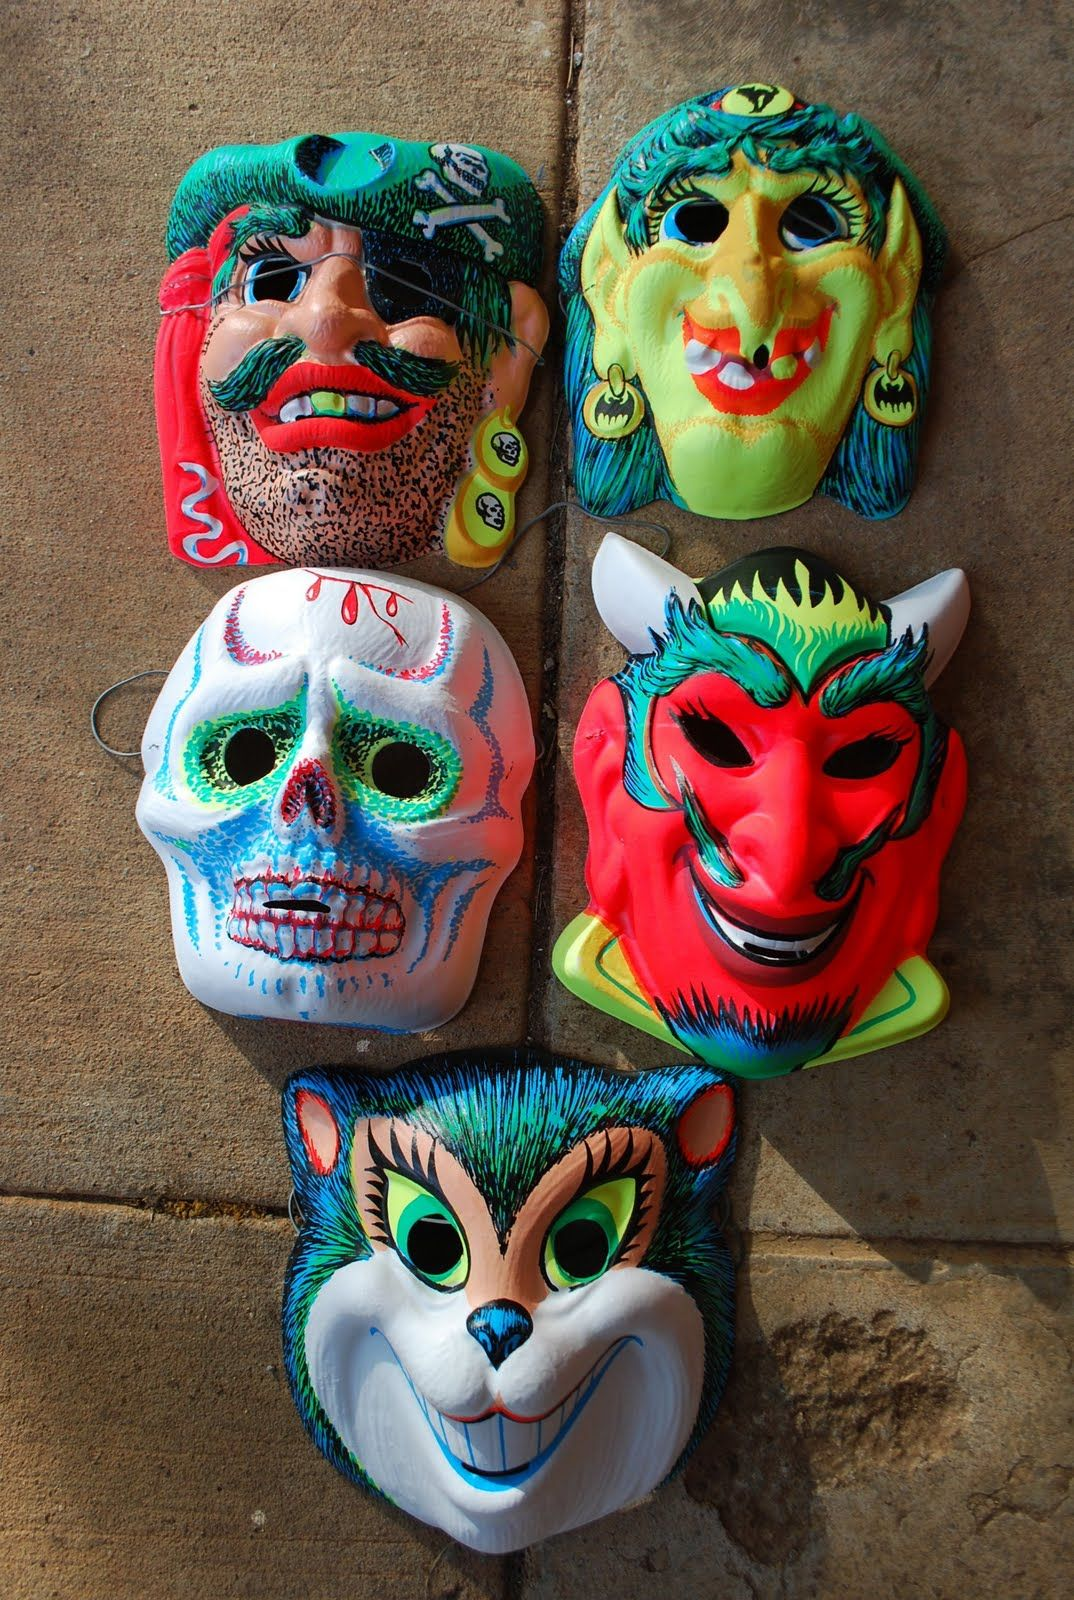 Vintage Halloween masks | halloweenmasks | Pinterest | Masks ...